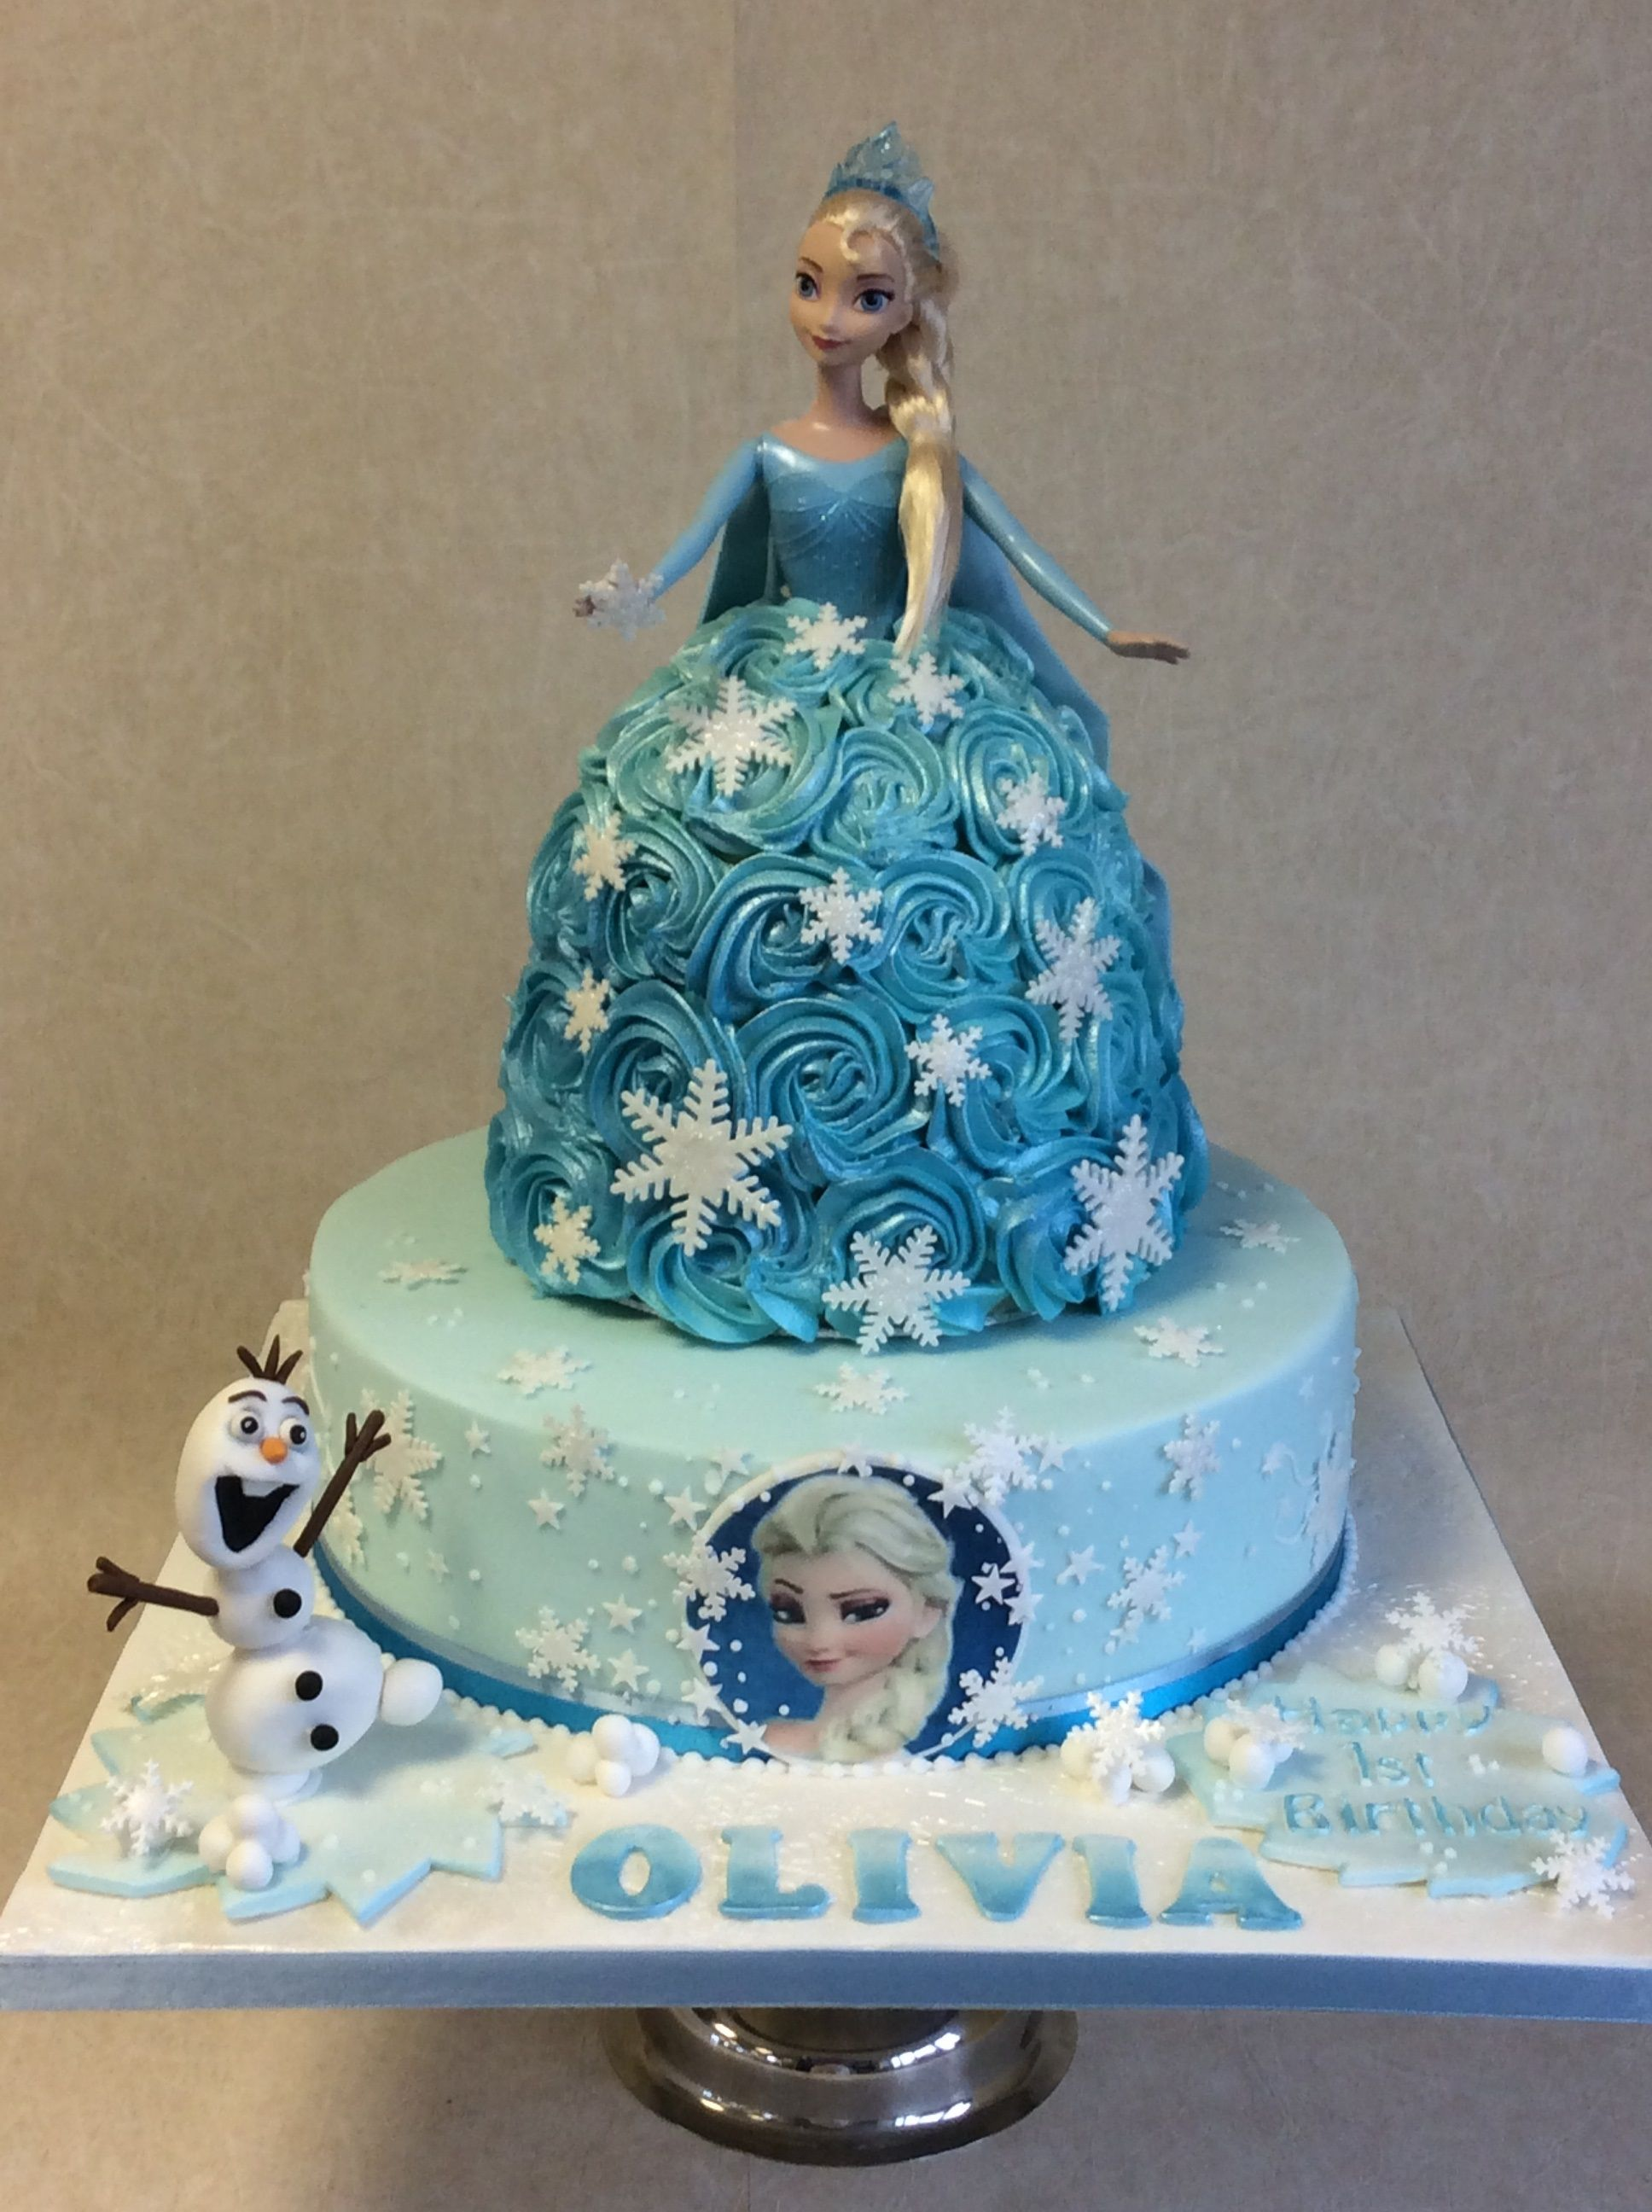 Large Frozen Themed 1st Birthday Cake With Princess Elsa Doll Top